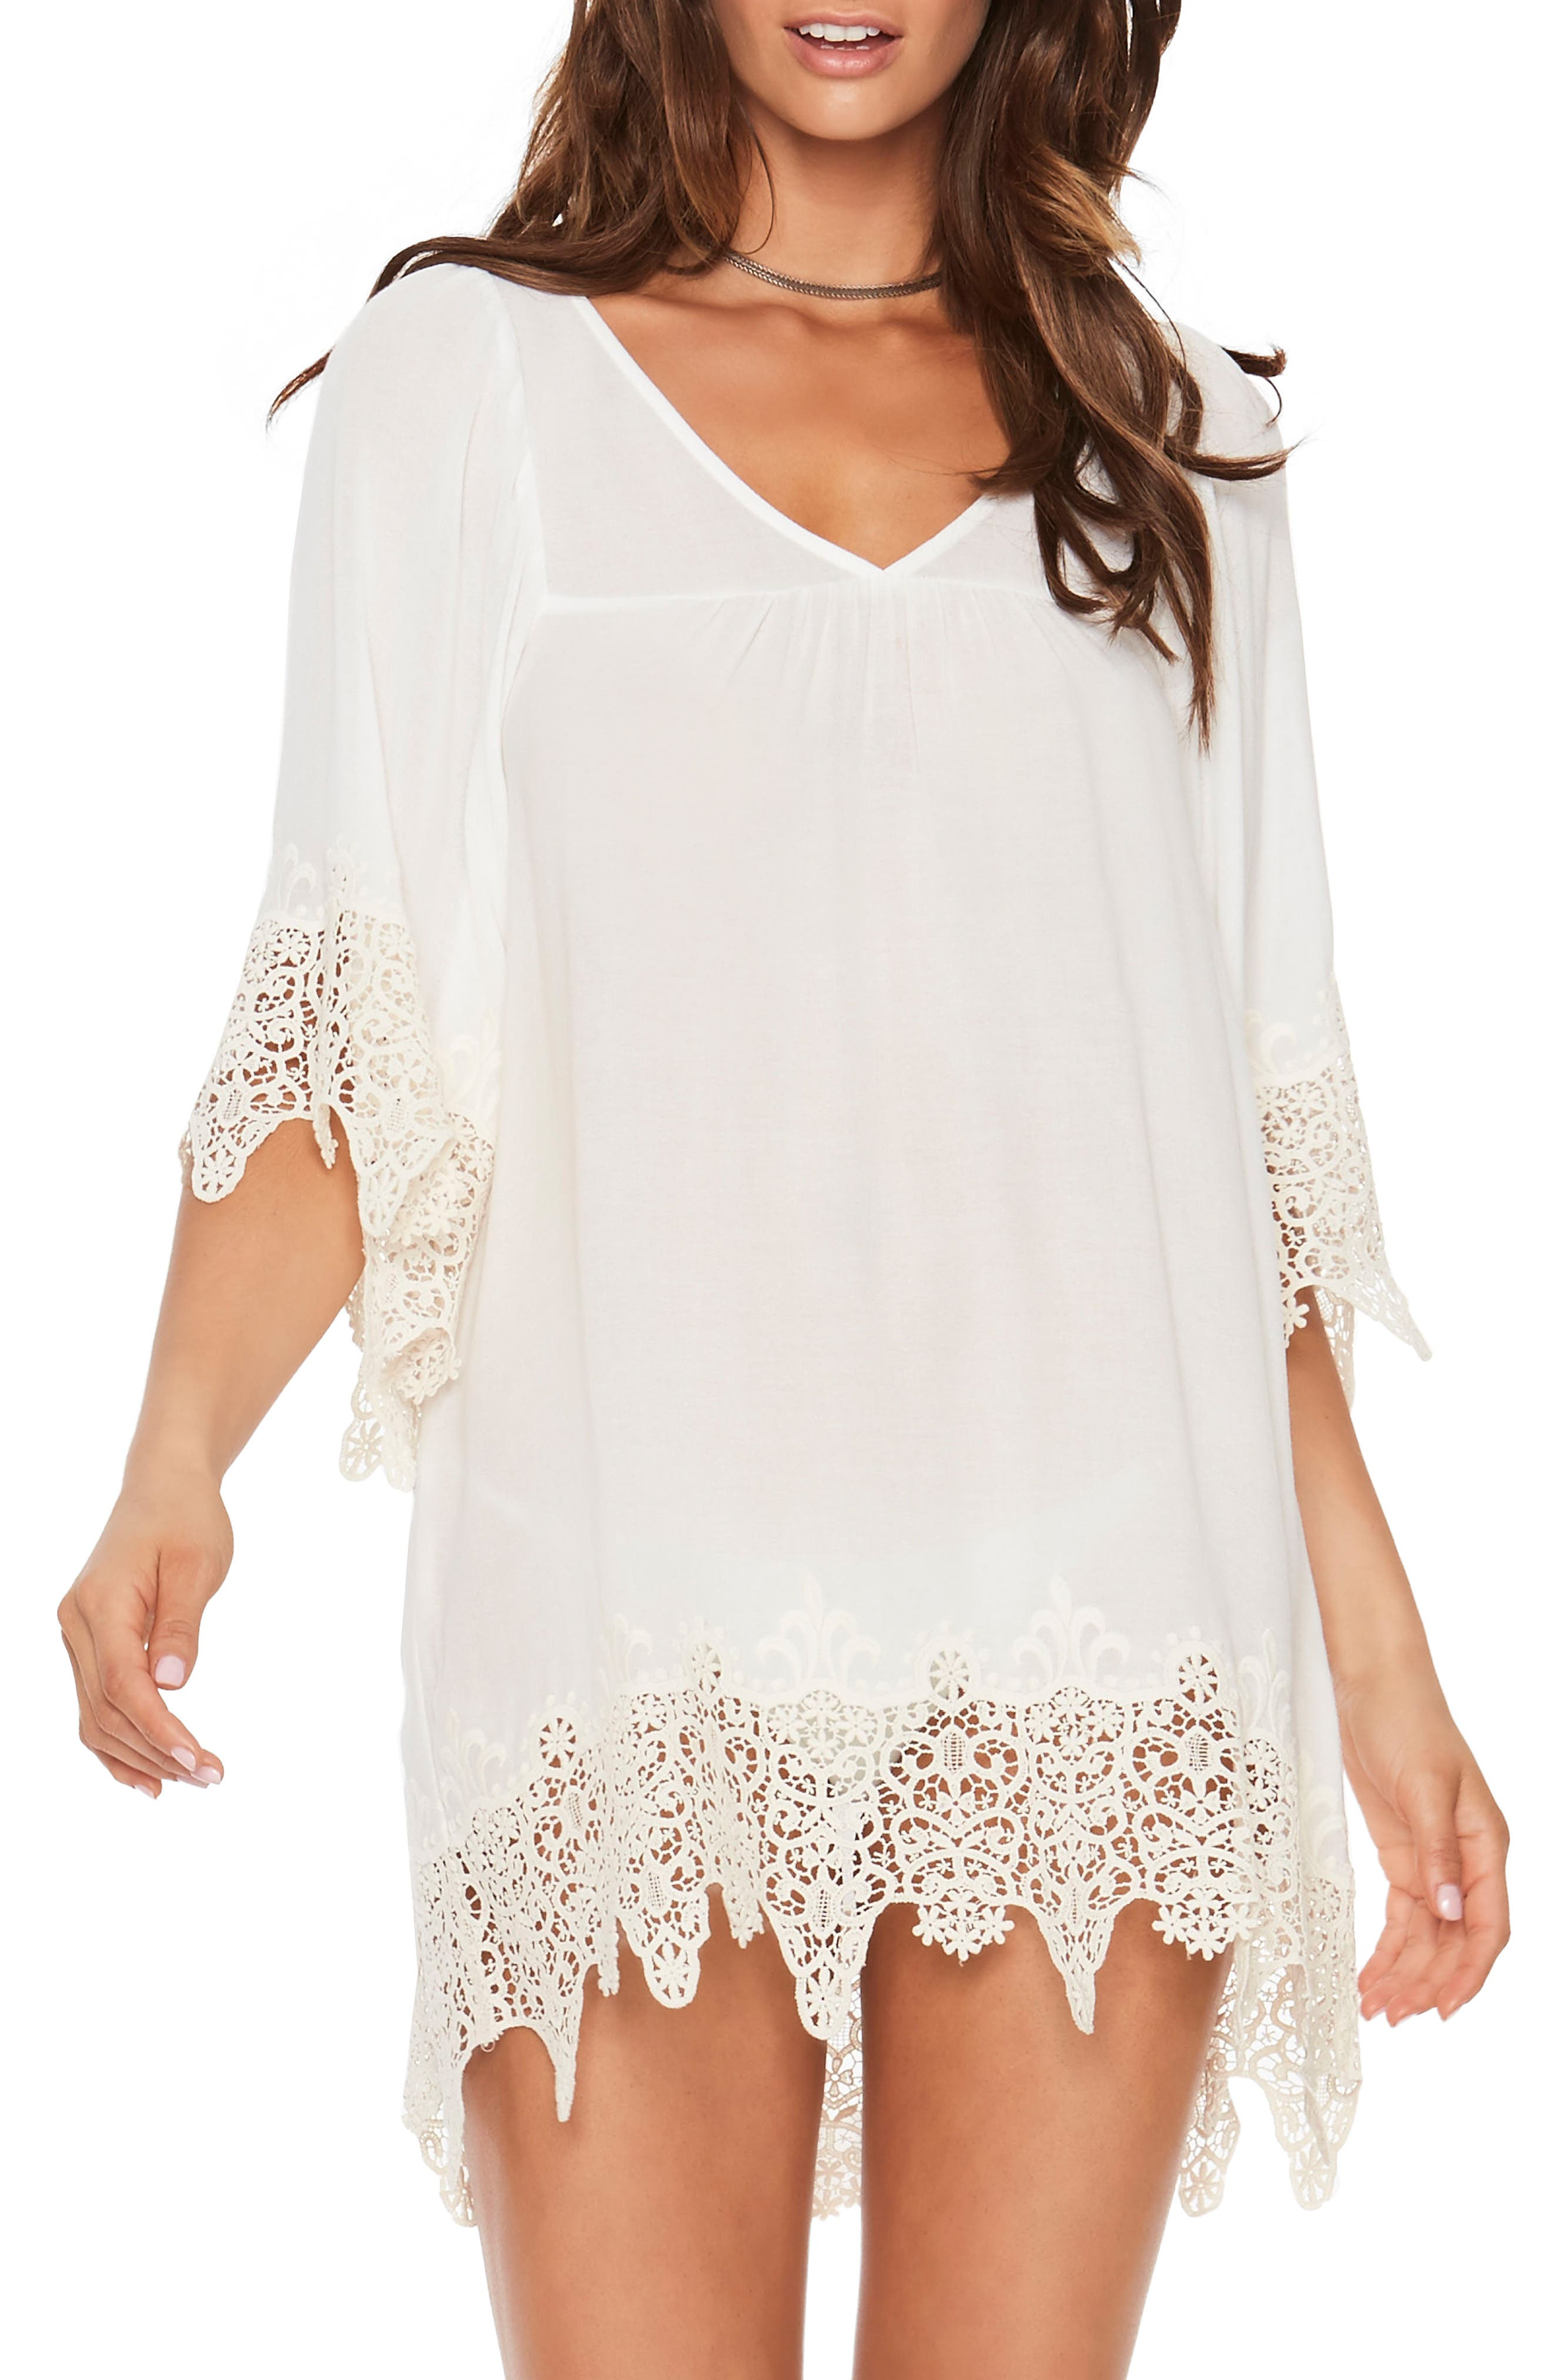 Alternate Image 1 Selected - L Space Lace Cover-Up Tunic